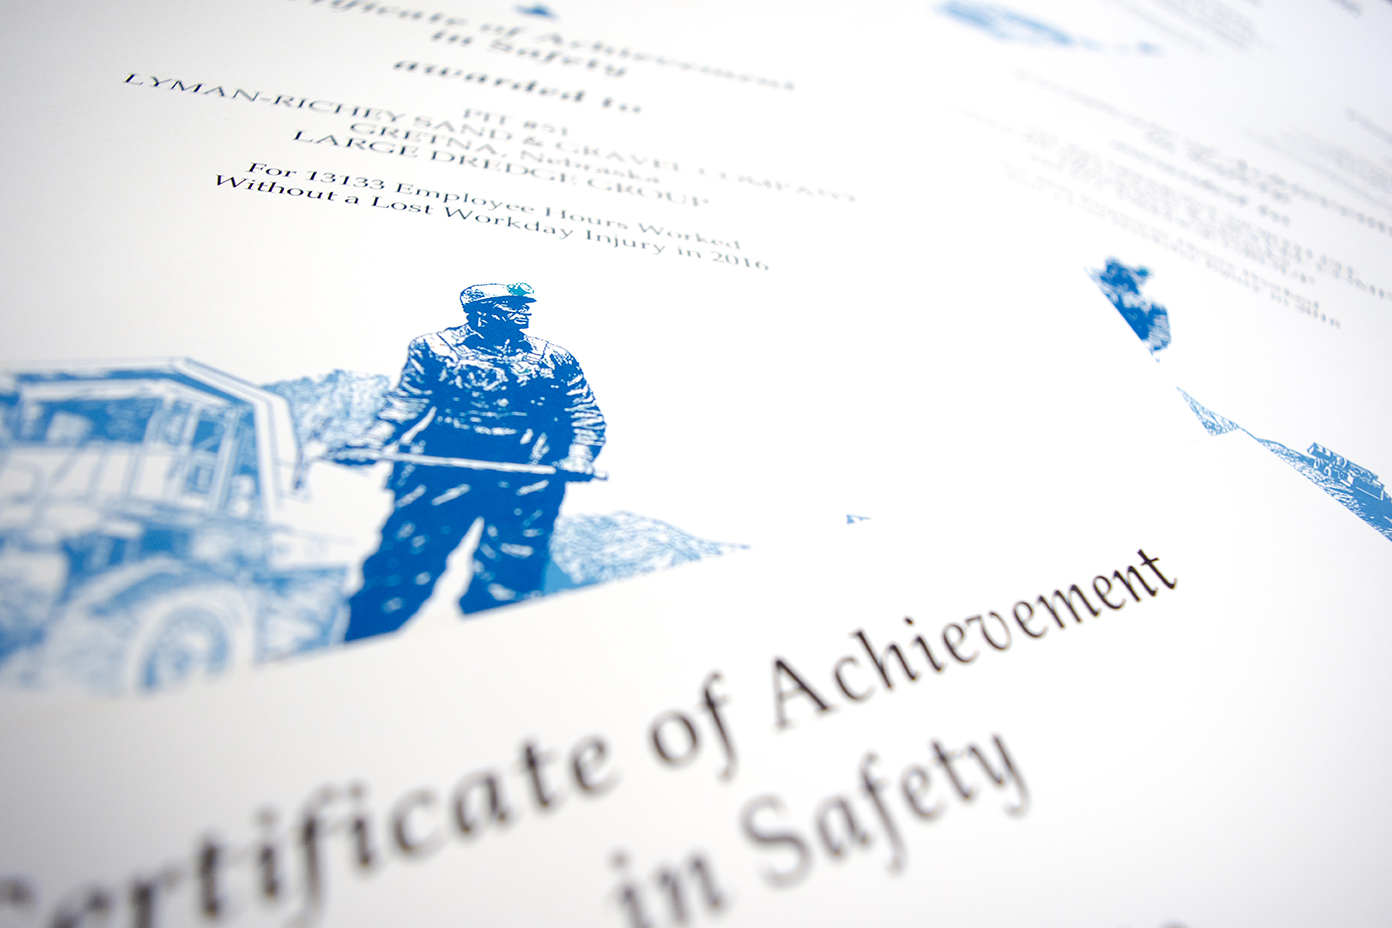 Photo by  BRADY JONES /Lyman-Richey Communications  The U.S. Mine Safety and Health Administration awarded four Central Sand and Gravel operations and three Lyman-Richey Sand & Gravel operations Certificates of Achievement in Safety for their safety records in 2016.